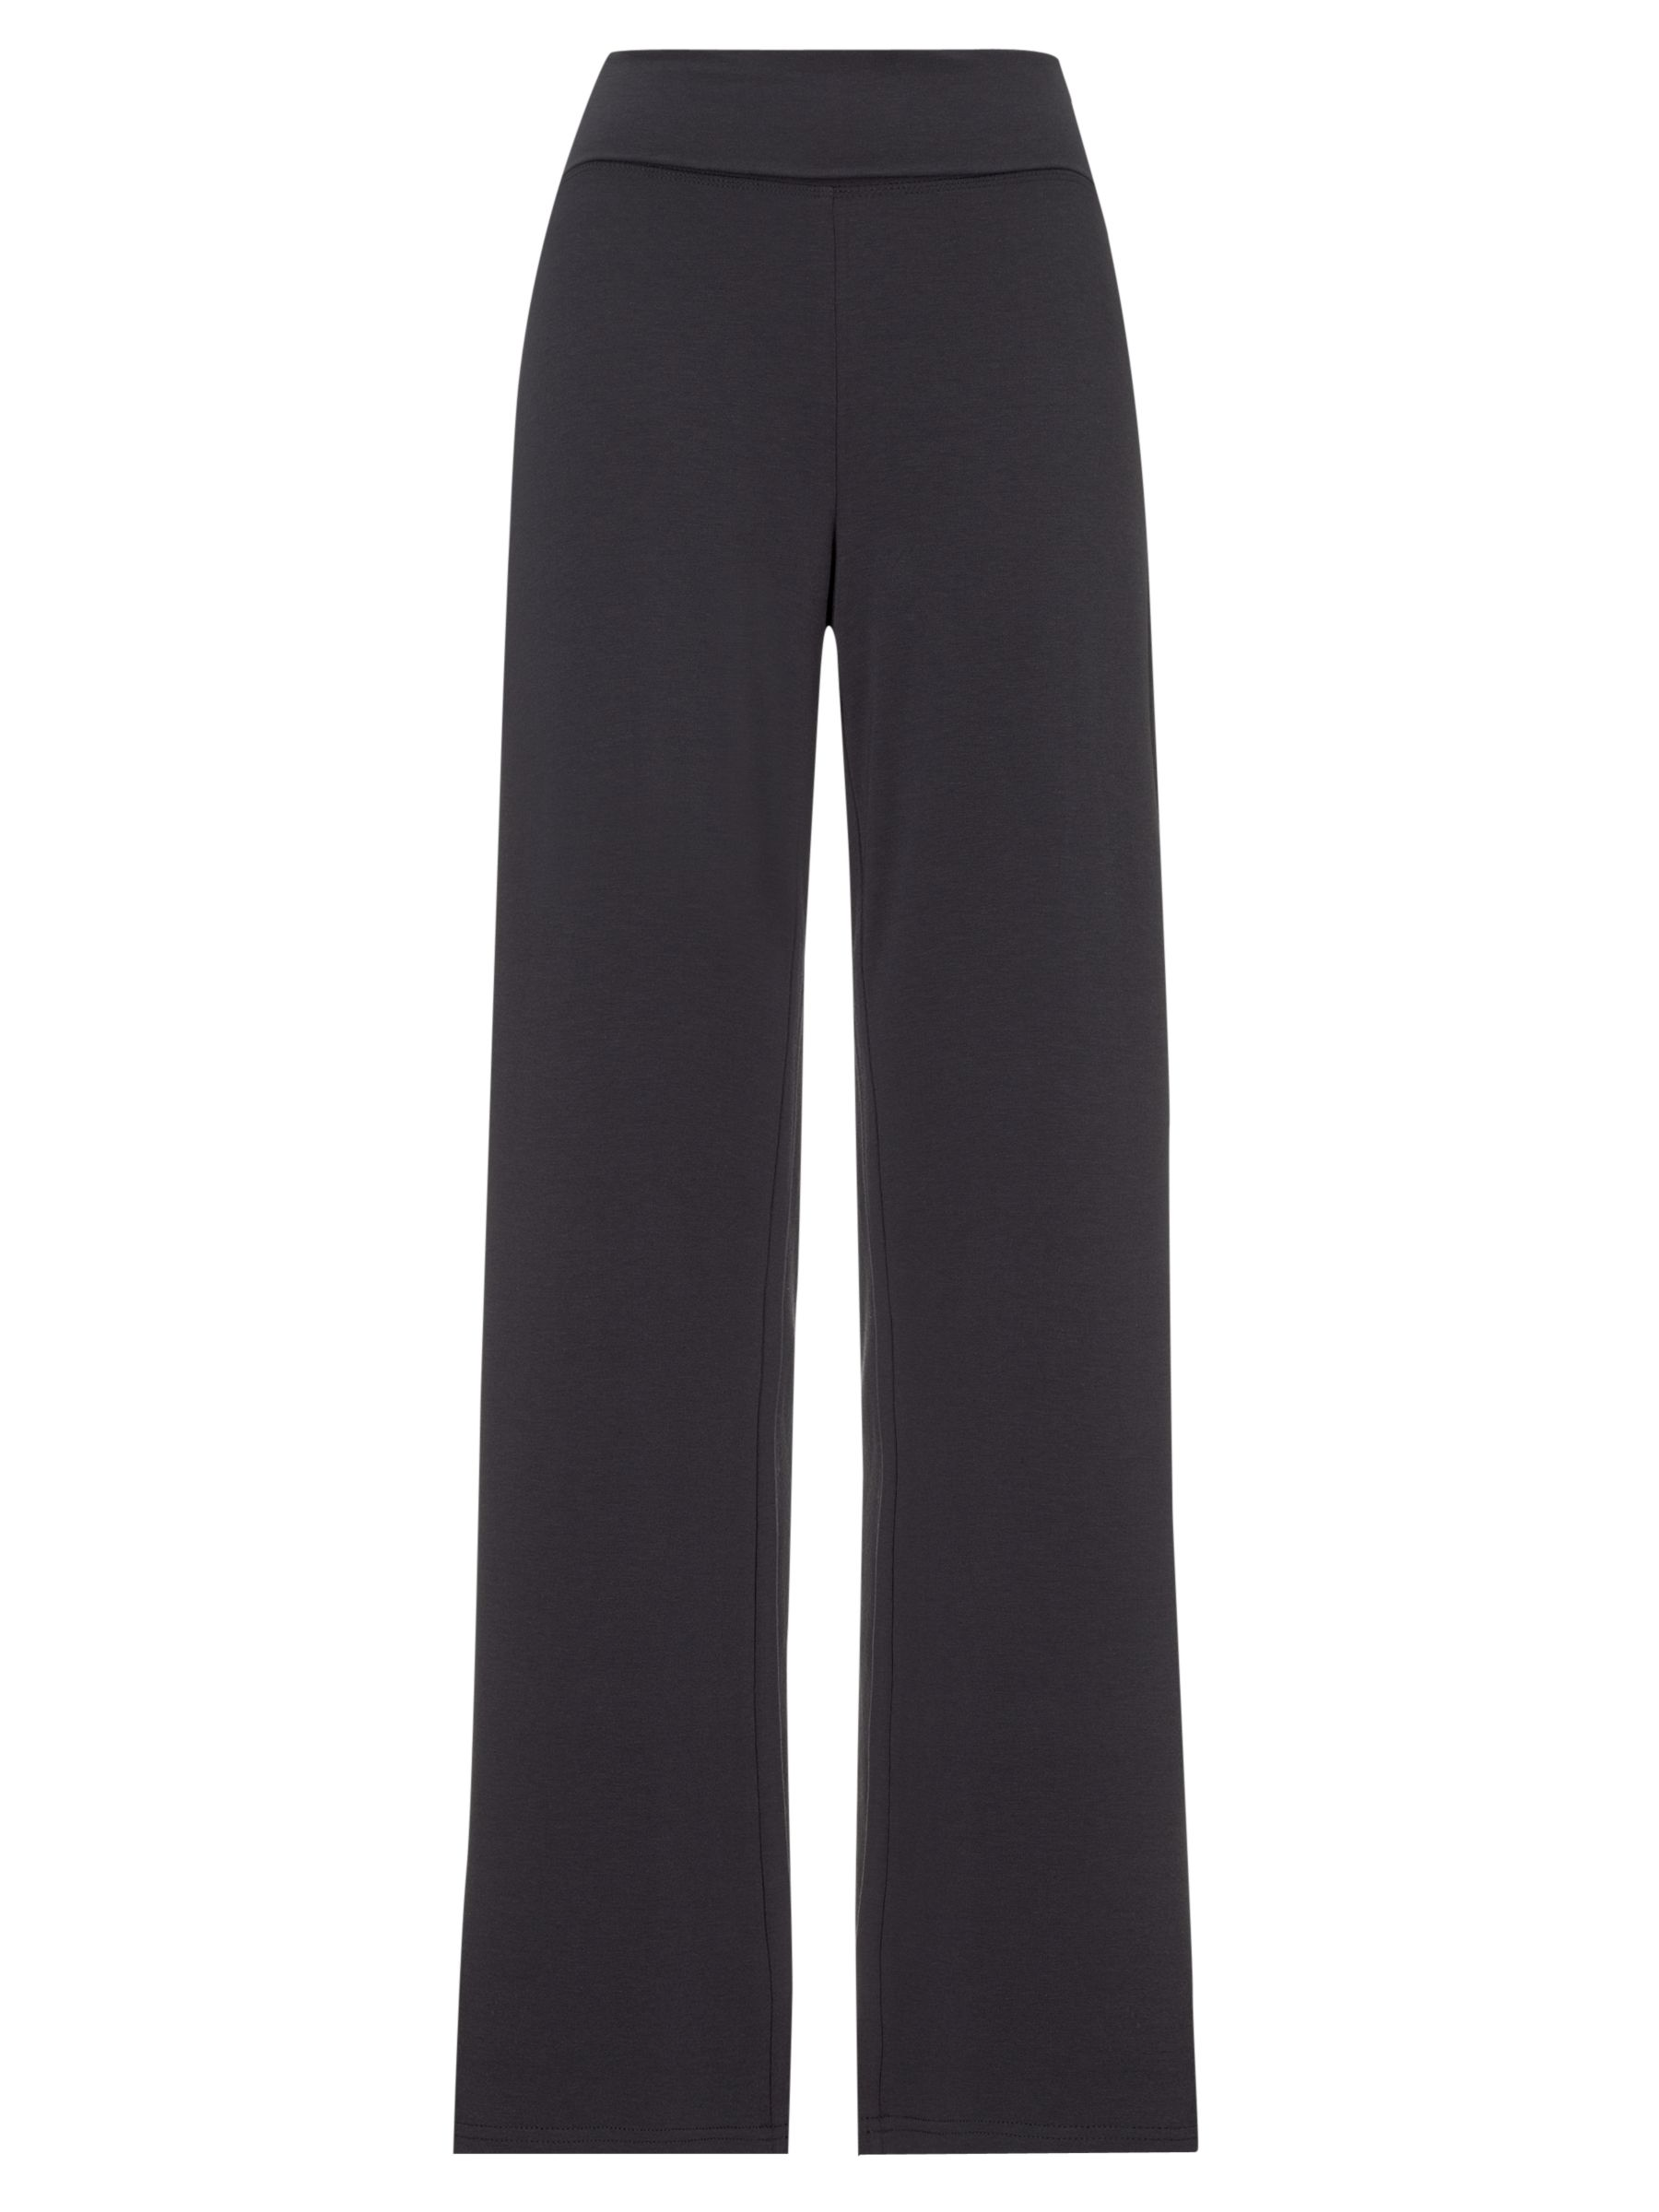 John Lewis Yoga Trousers